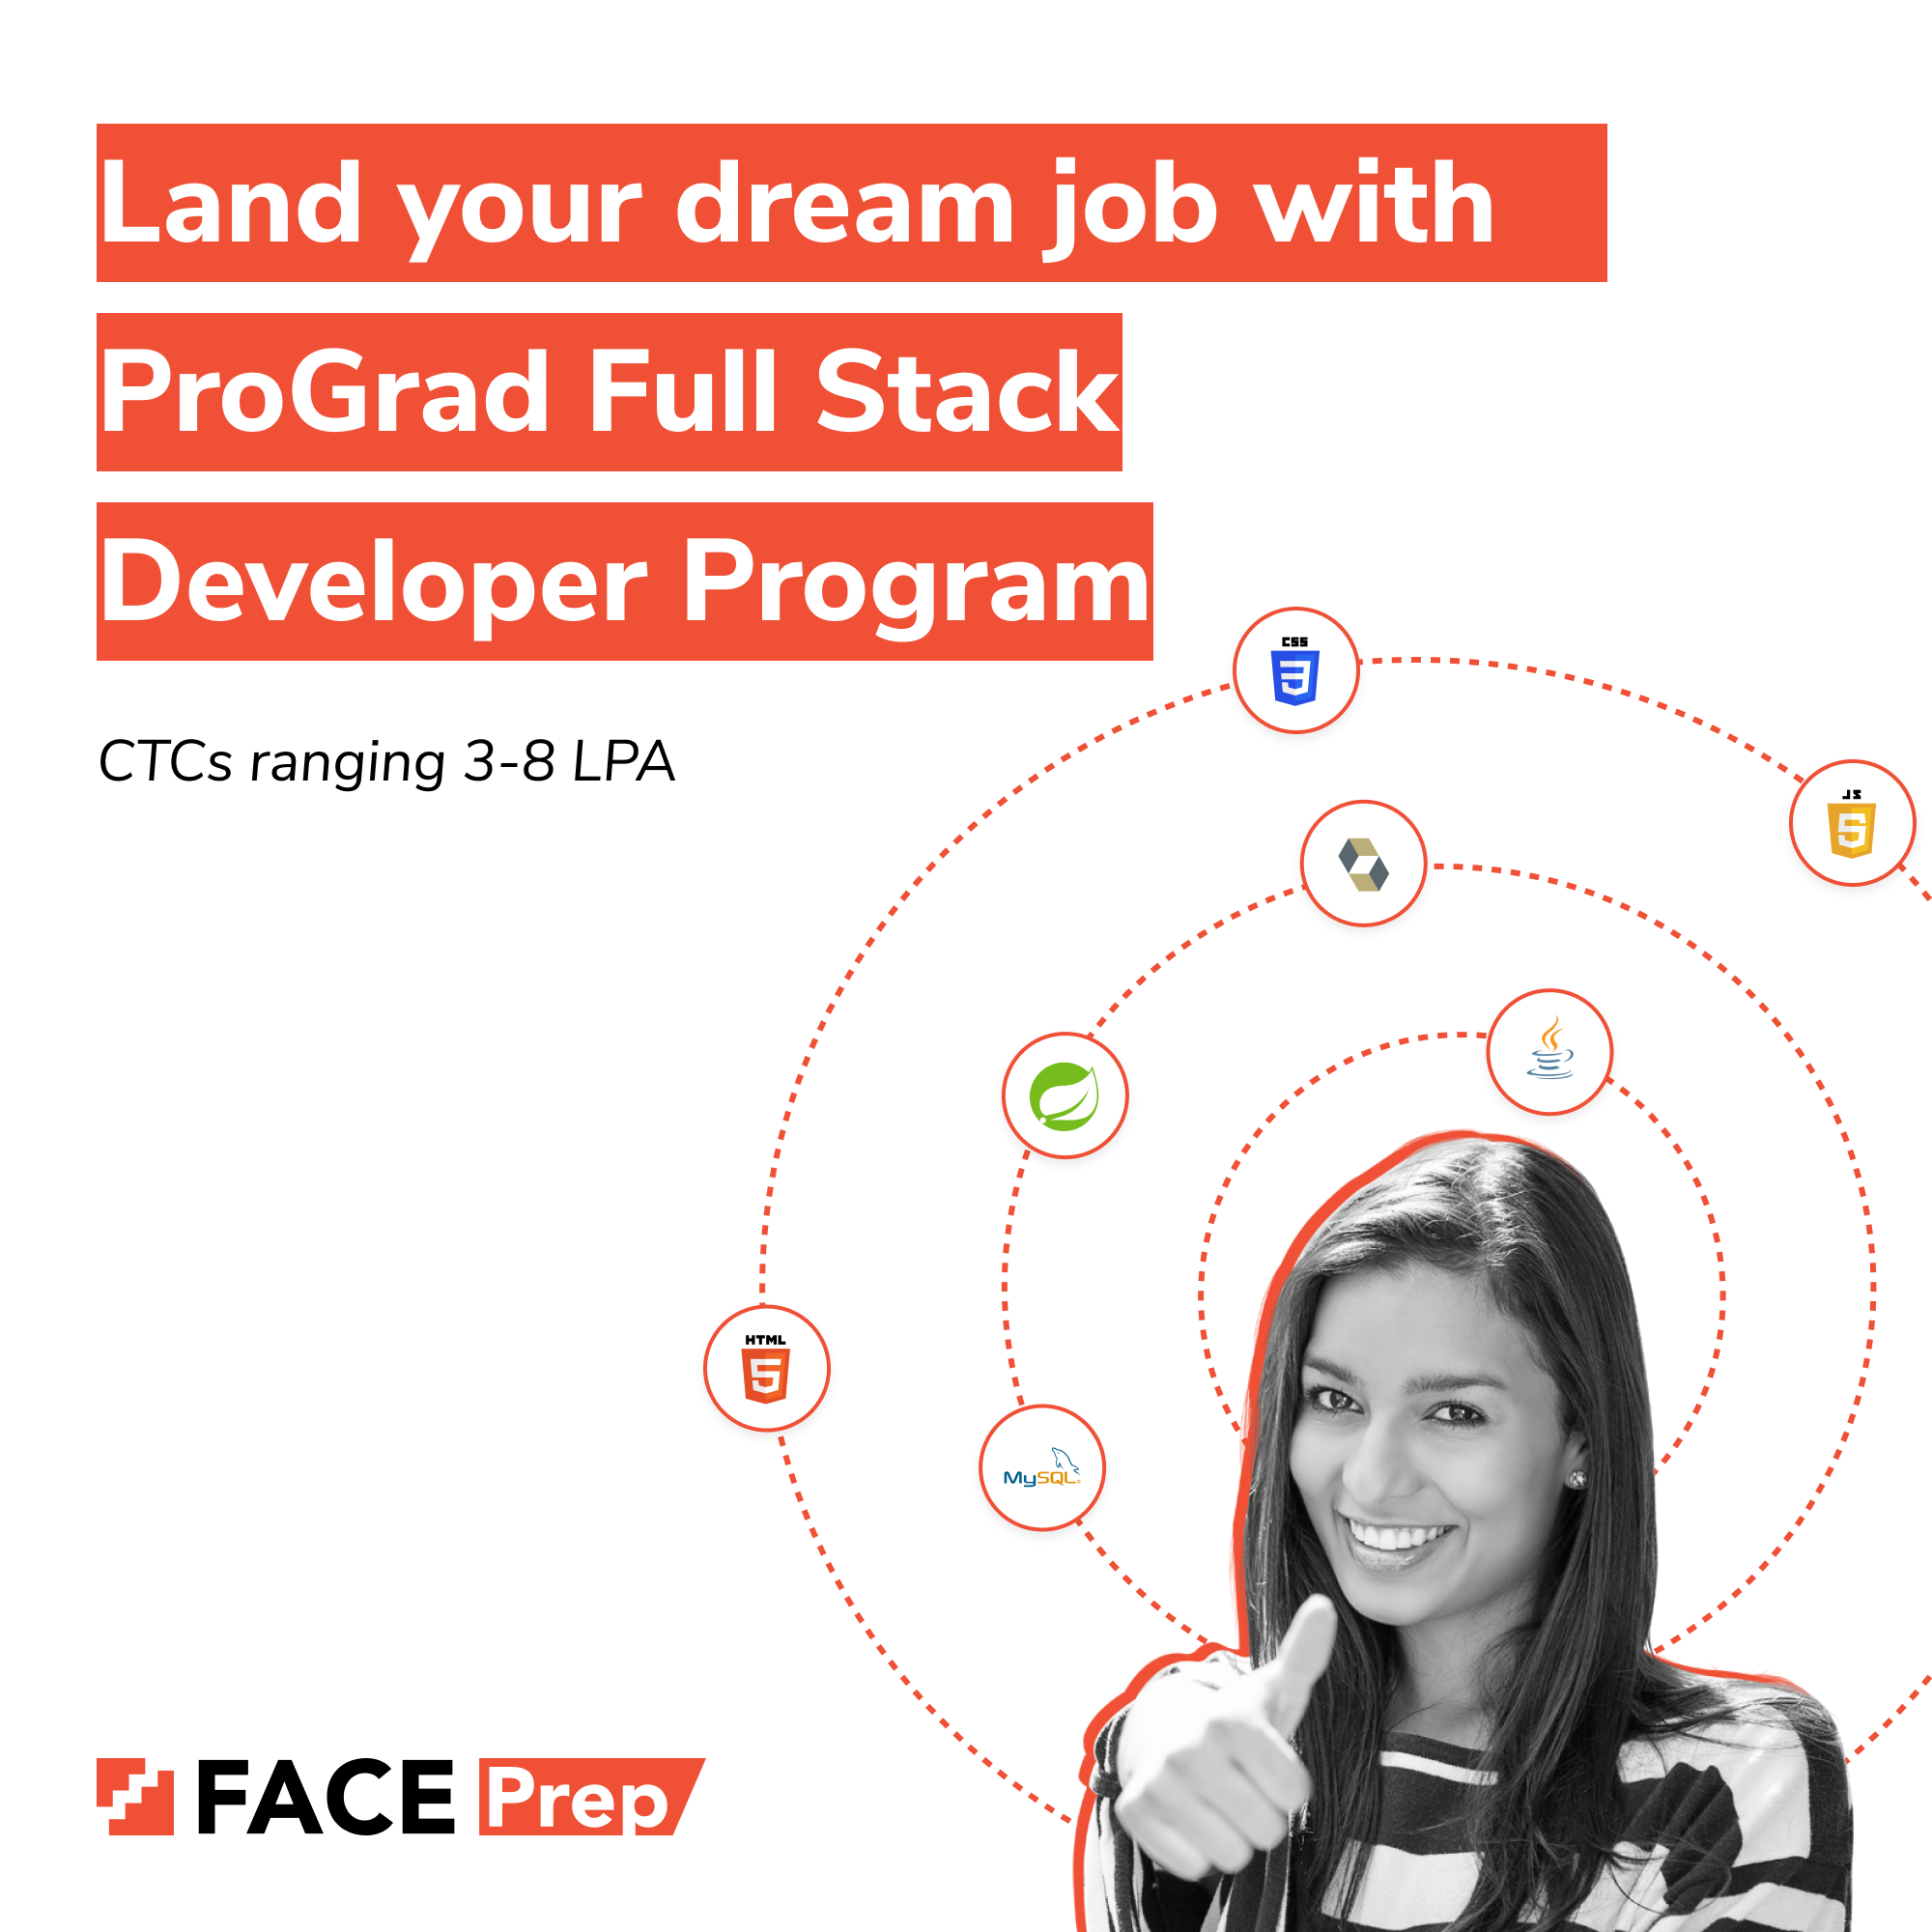 prograd full stack developer program